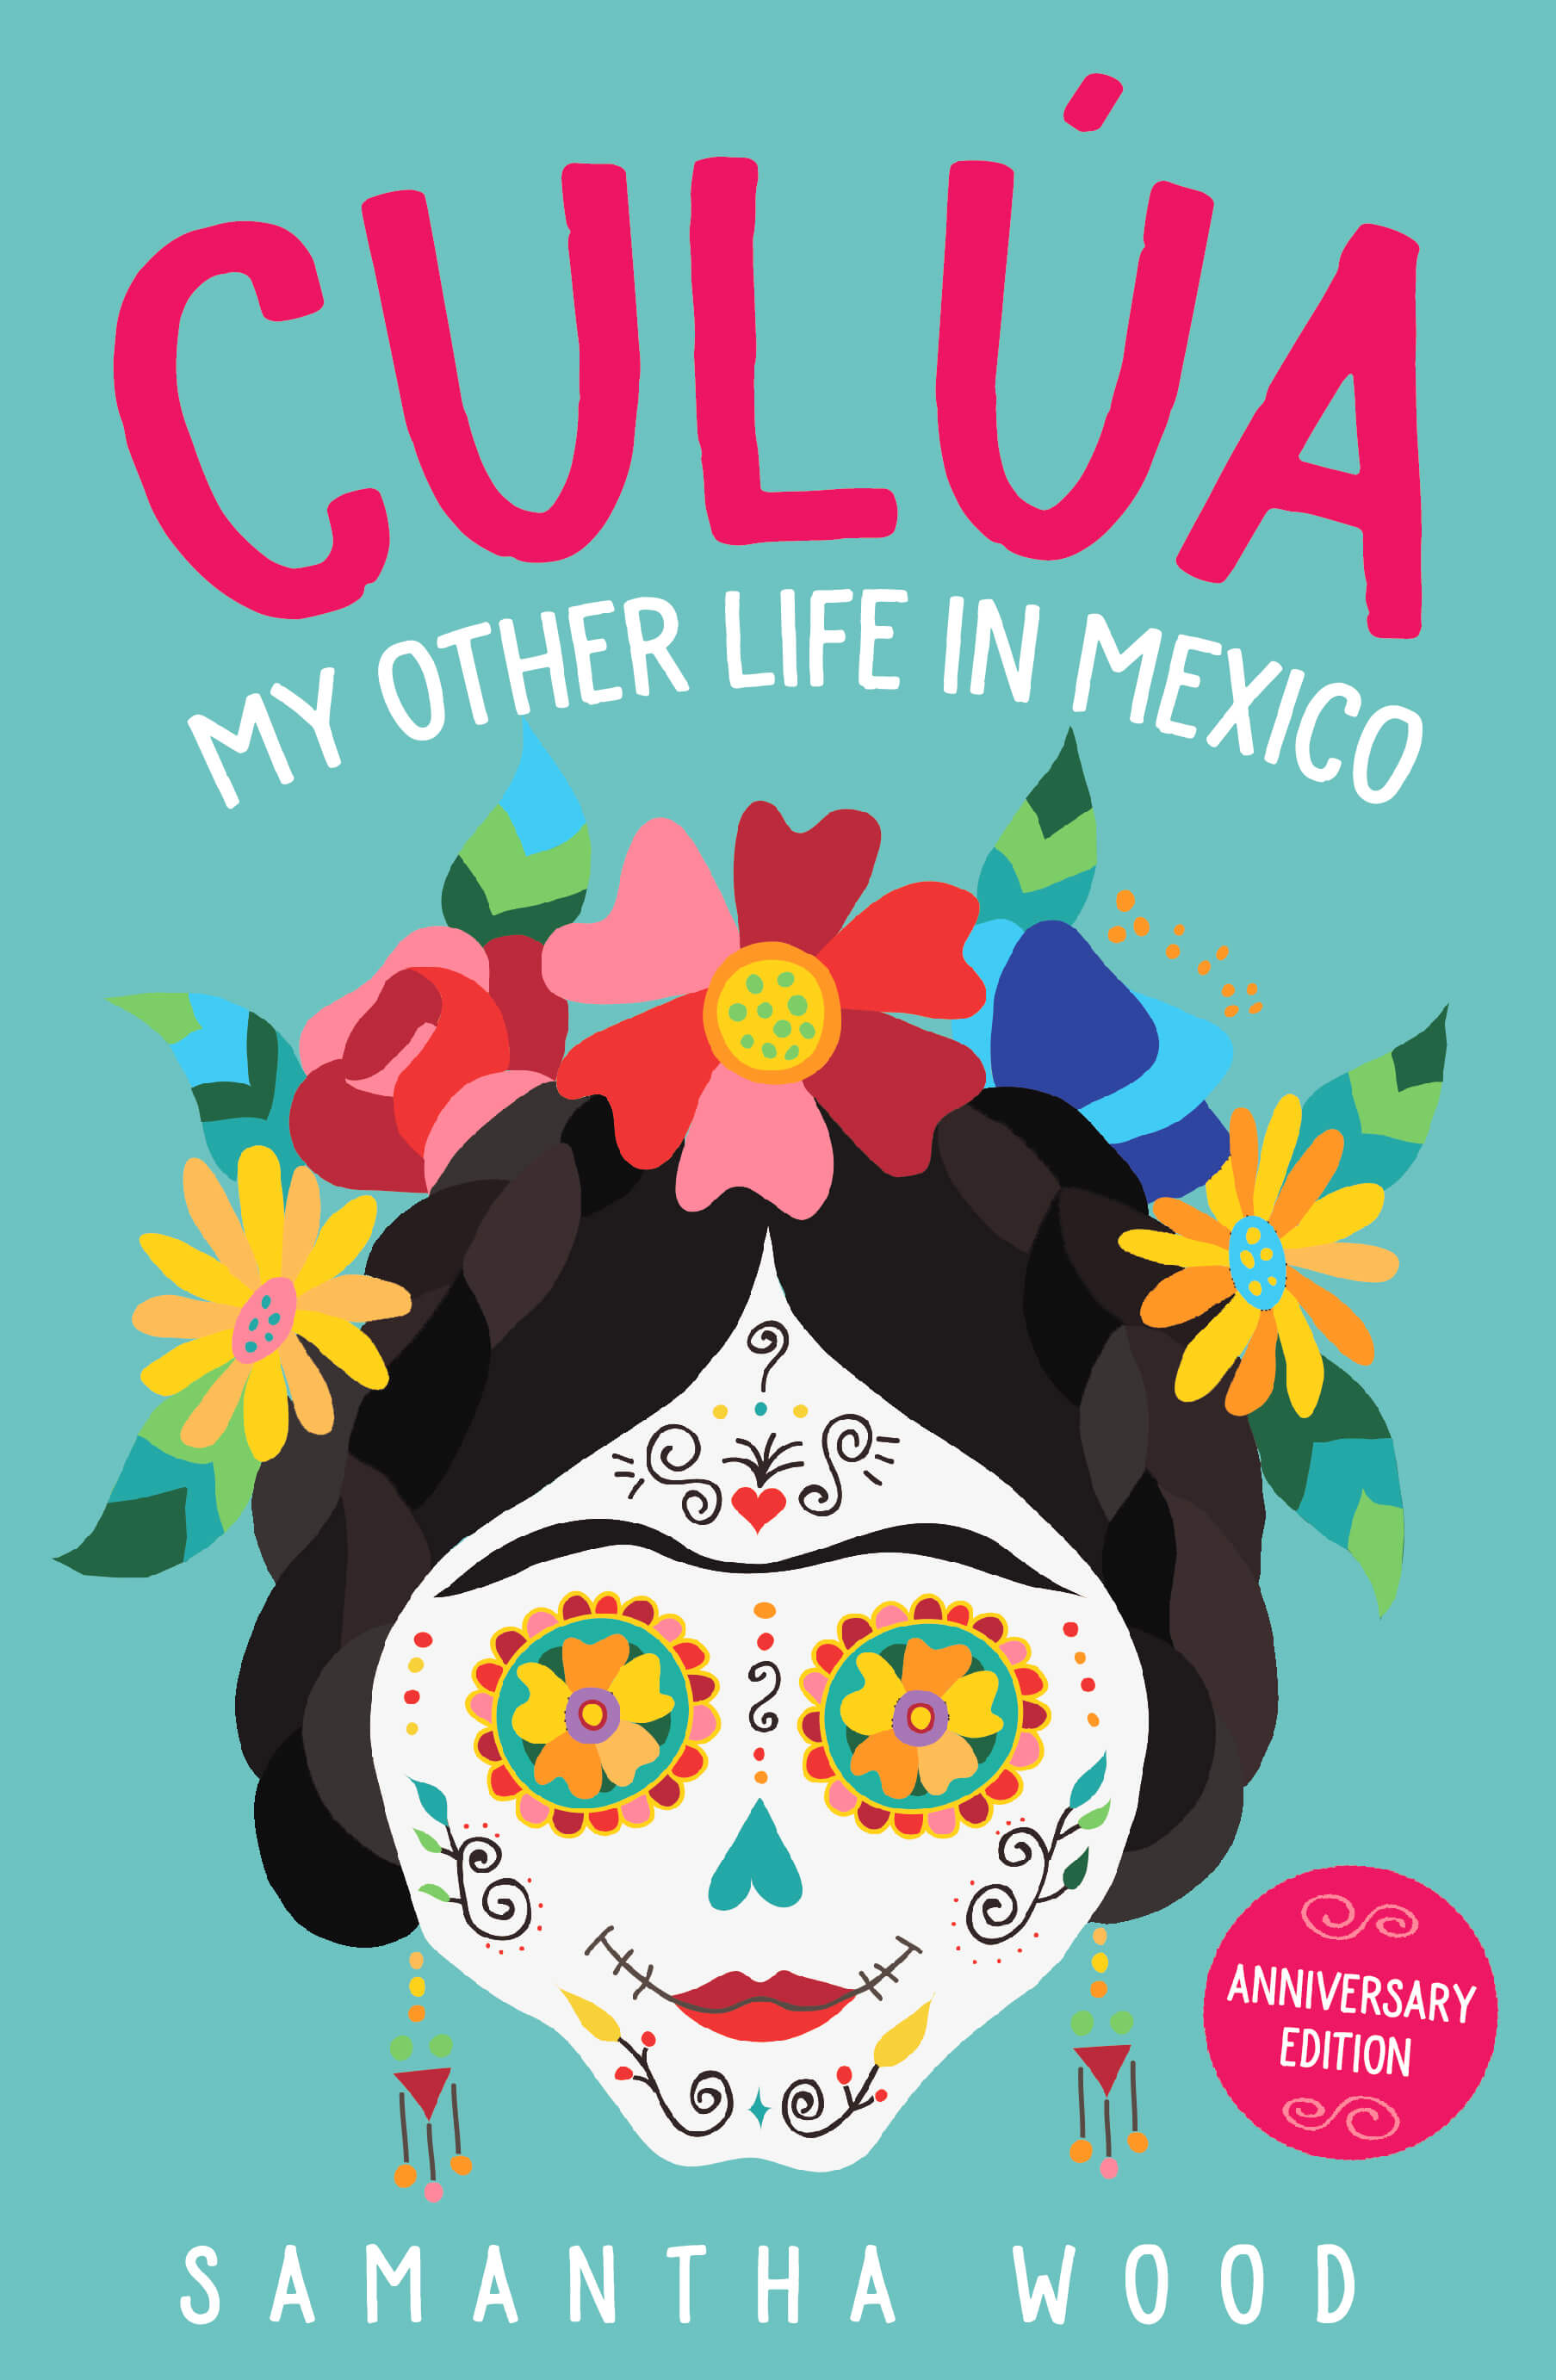 Culua: My Other Life in Mexico by Samantha Wood. Cover design, Christabella Designs